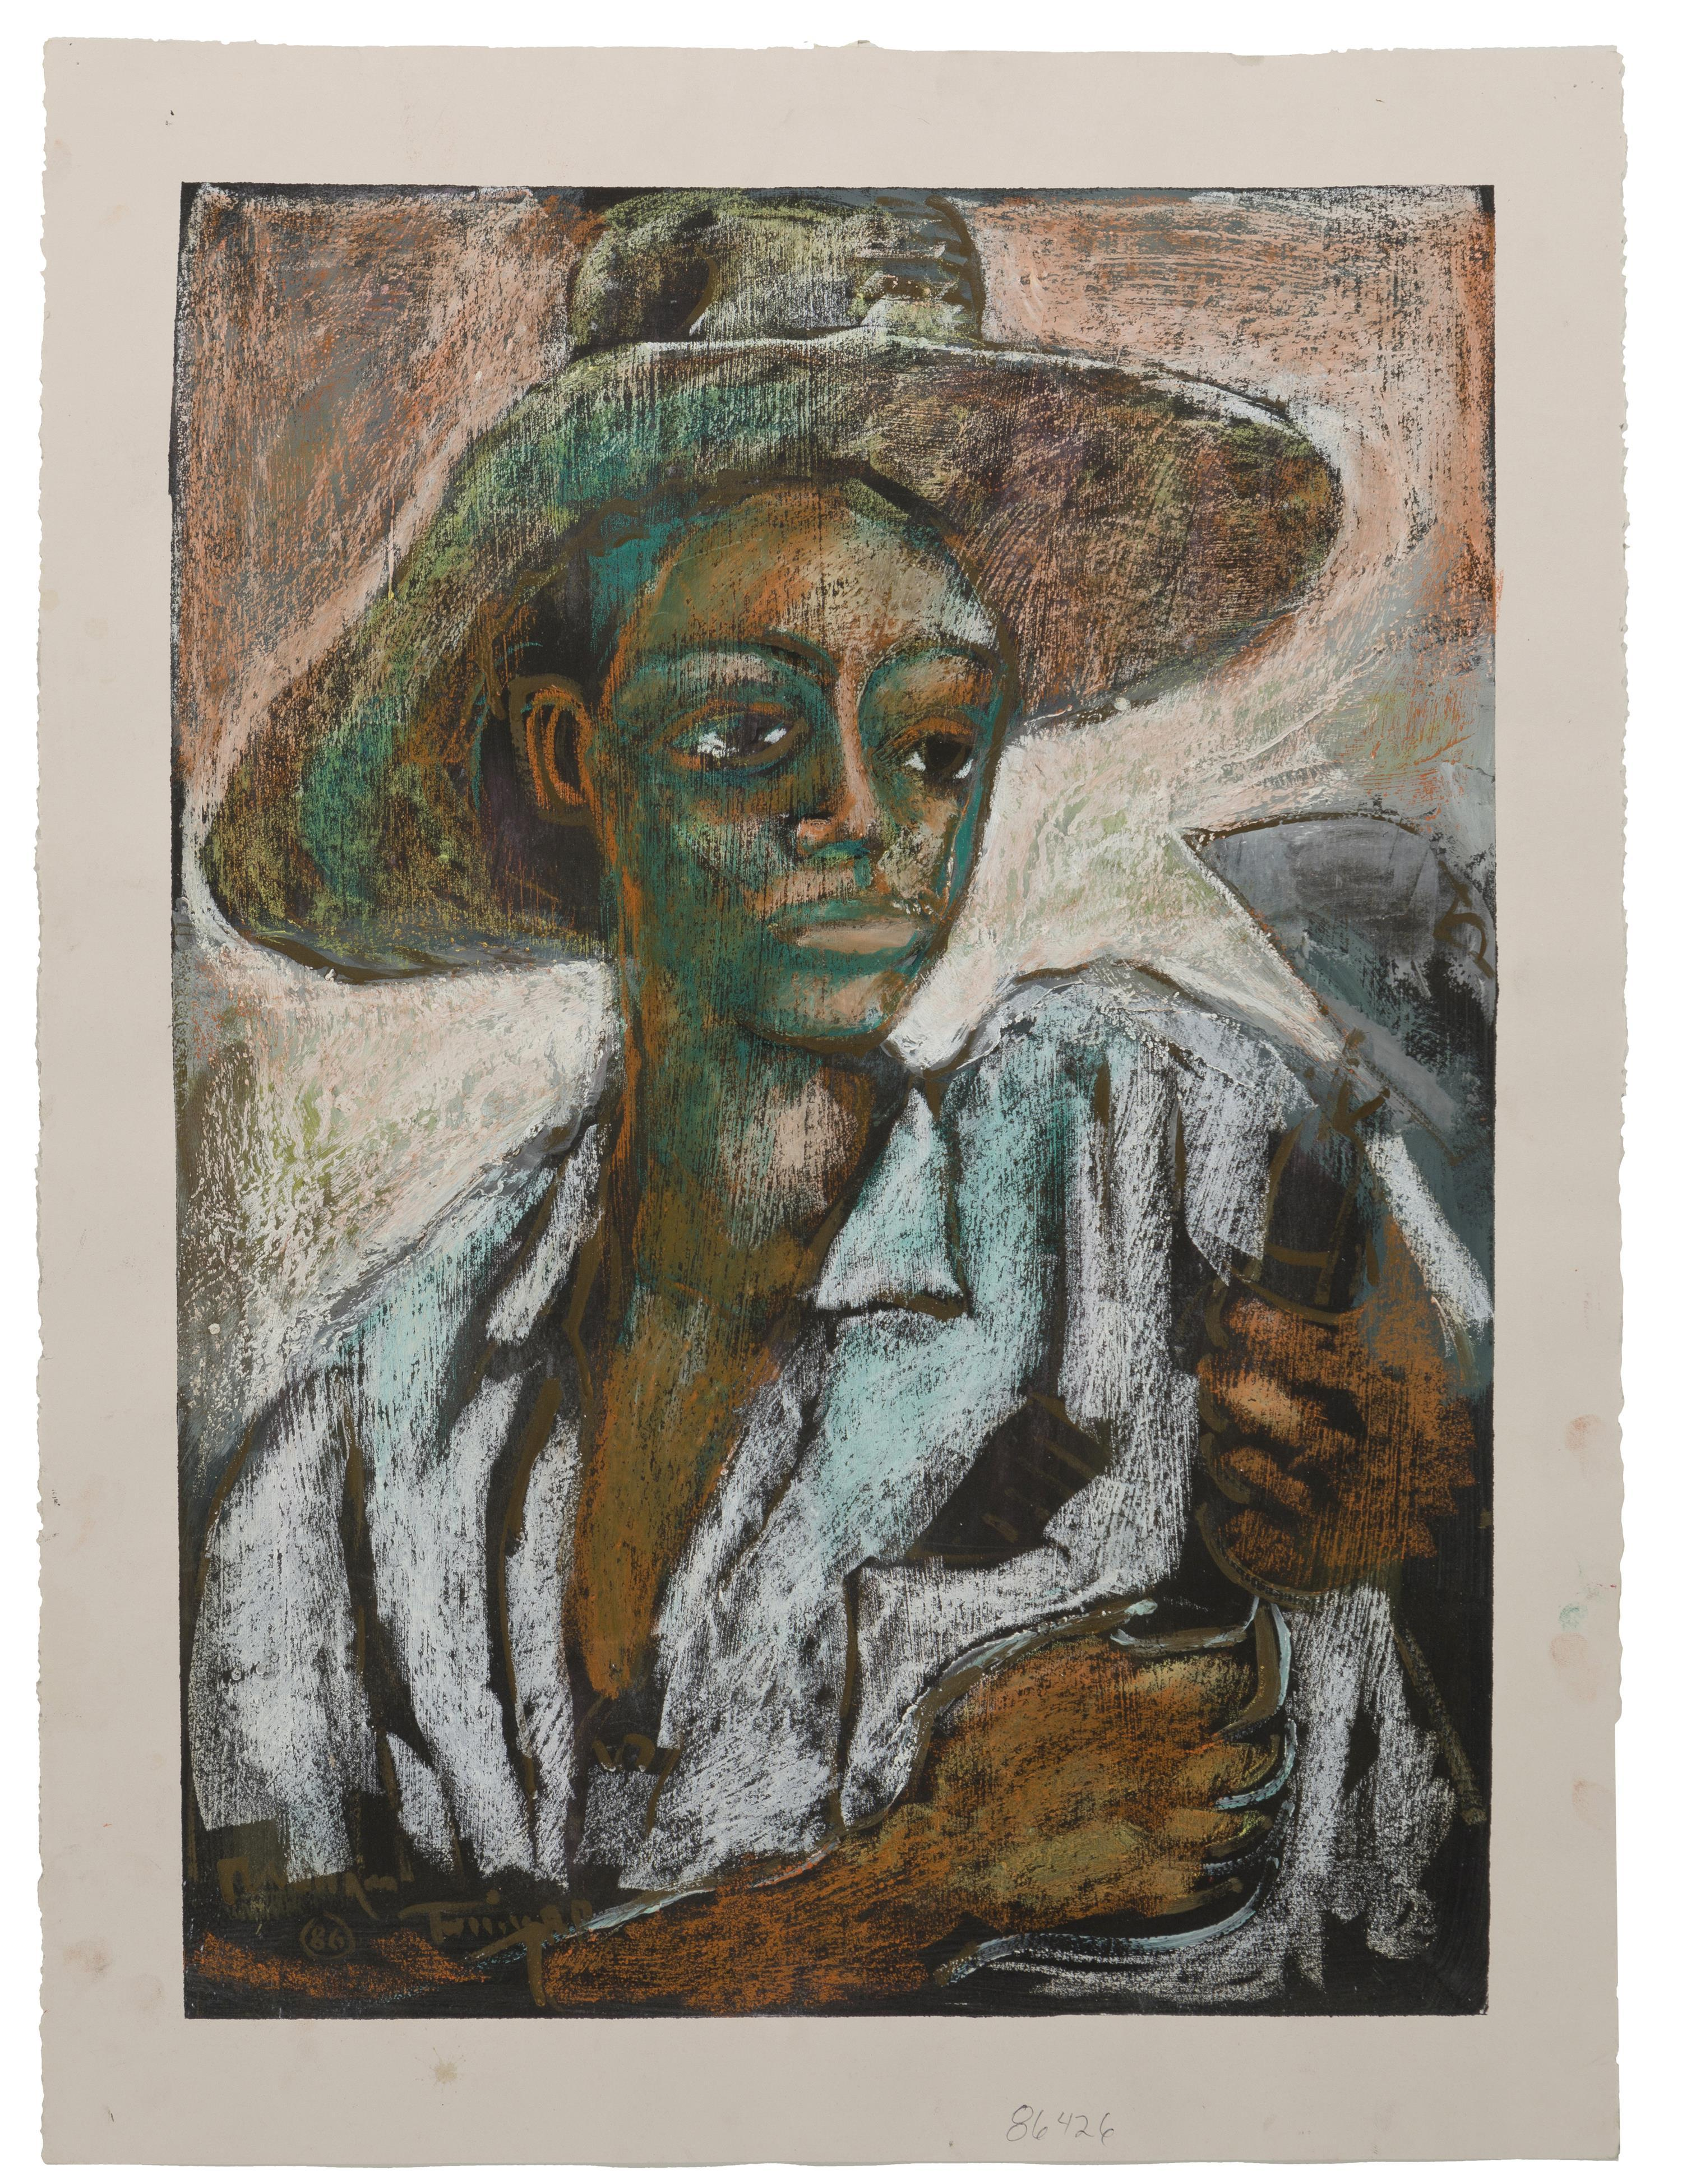 """William Tolliver, (1951-2000 American), Man working in field with hoe, 1986, Mixed media on paper, Image: 26"""" H x 18.5"""" W"""